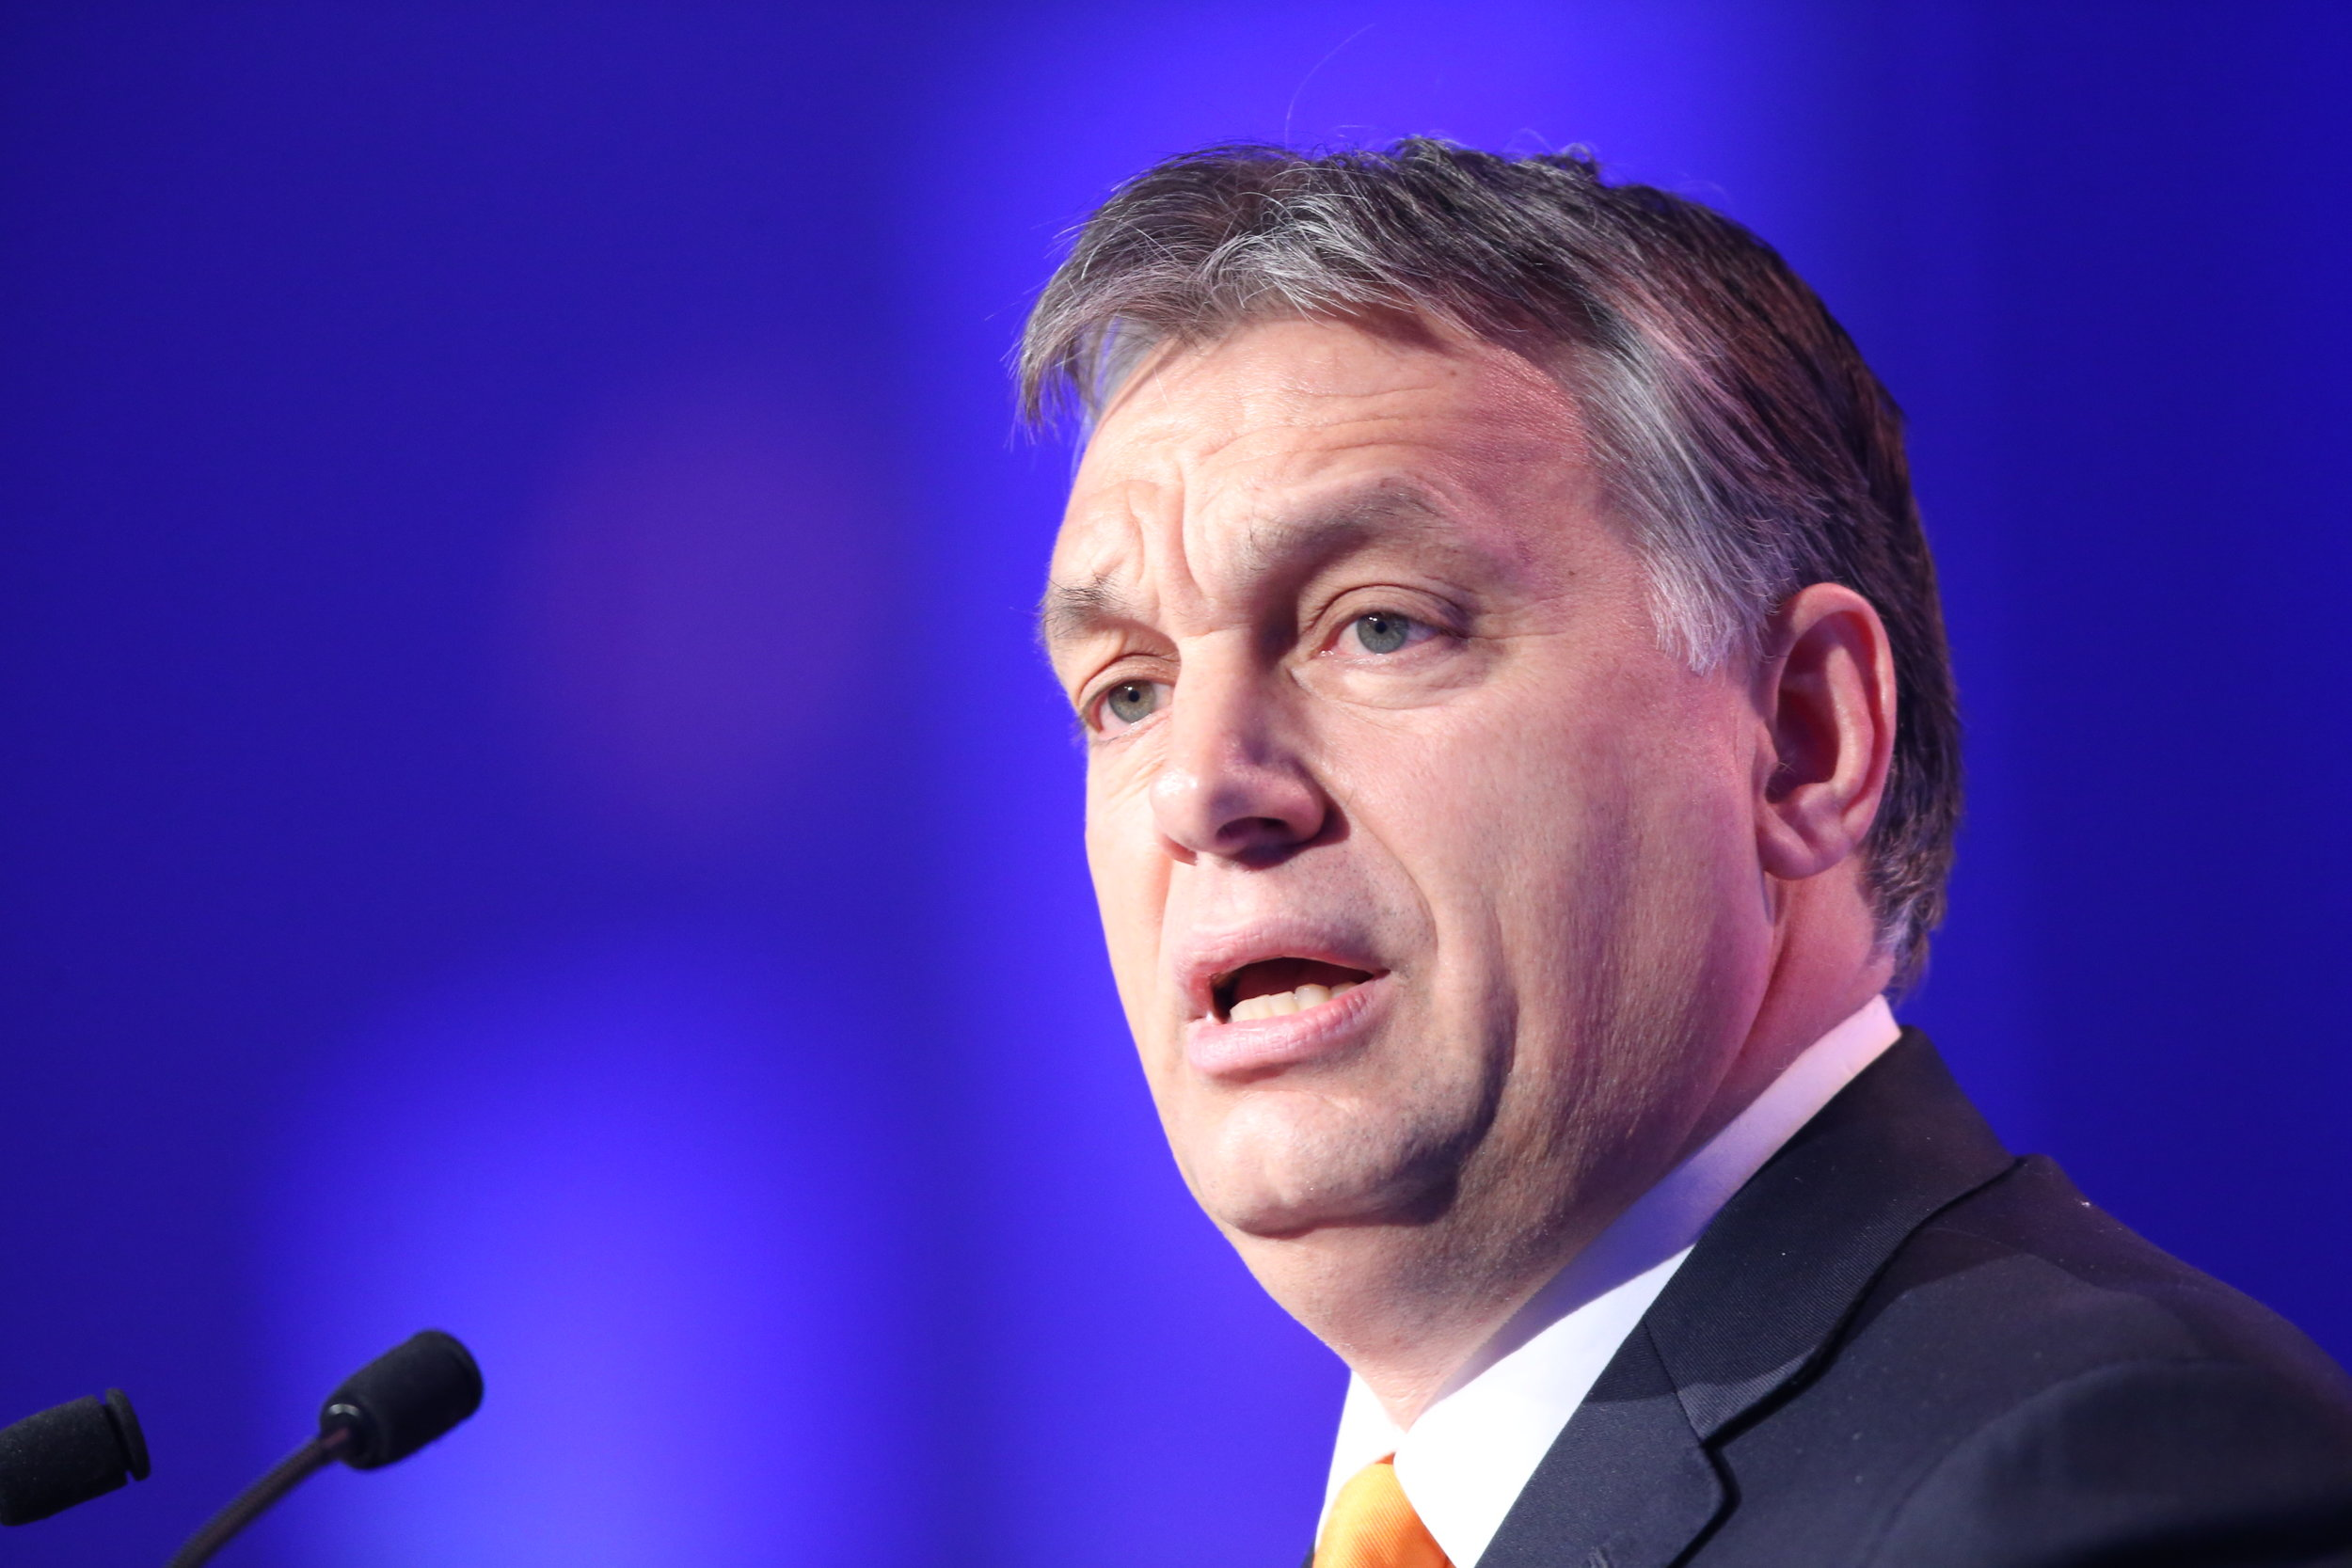 Hungarian Prime Minister Viktor Orbán pictured in 2014 at a European People's Party conference. (Wikimedia Commons)